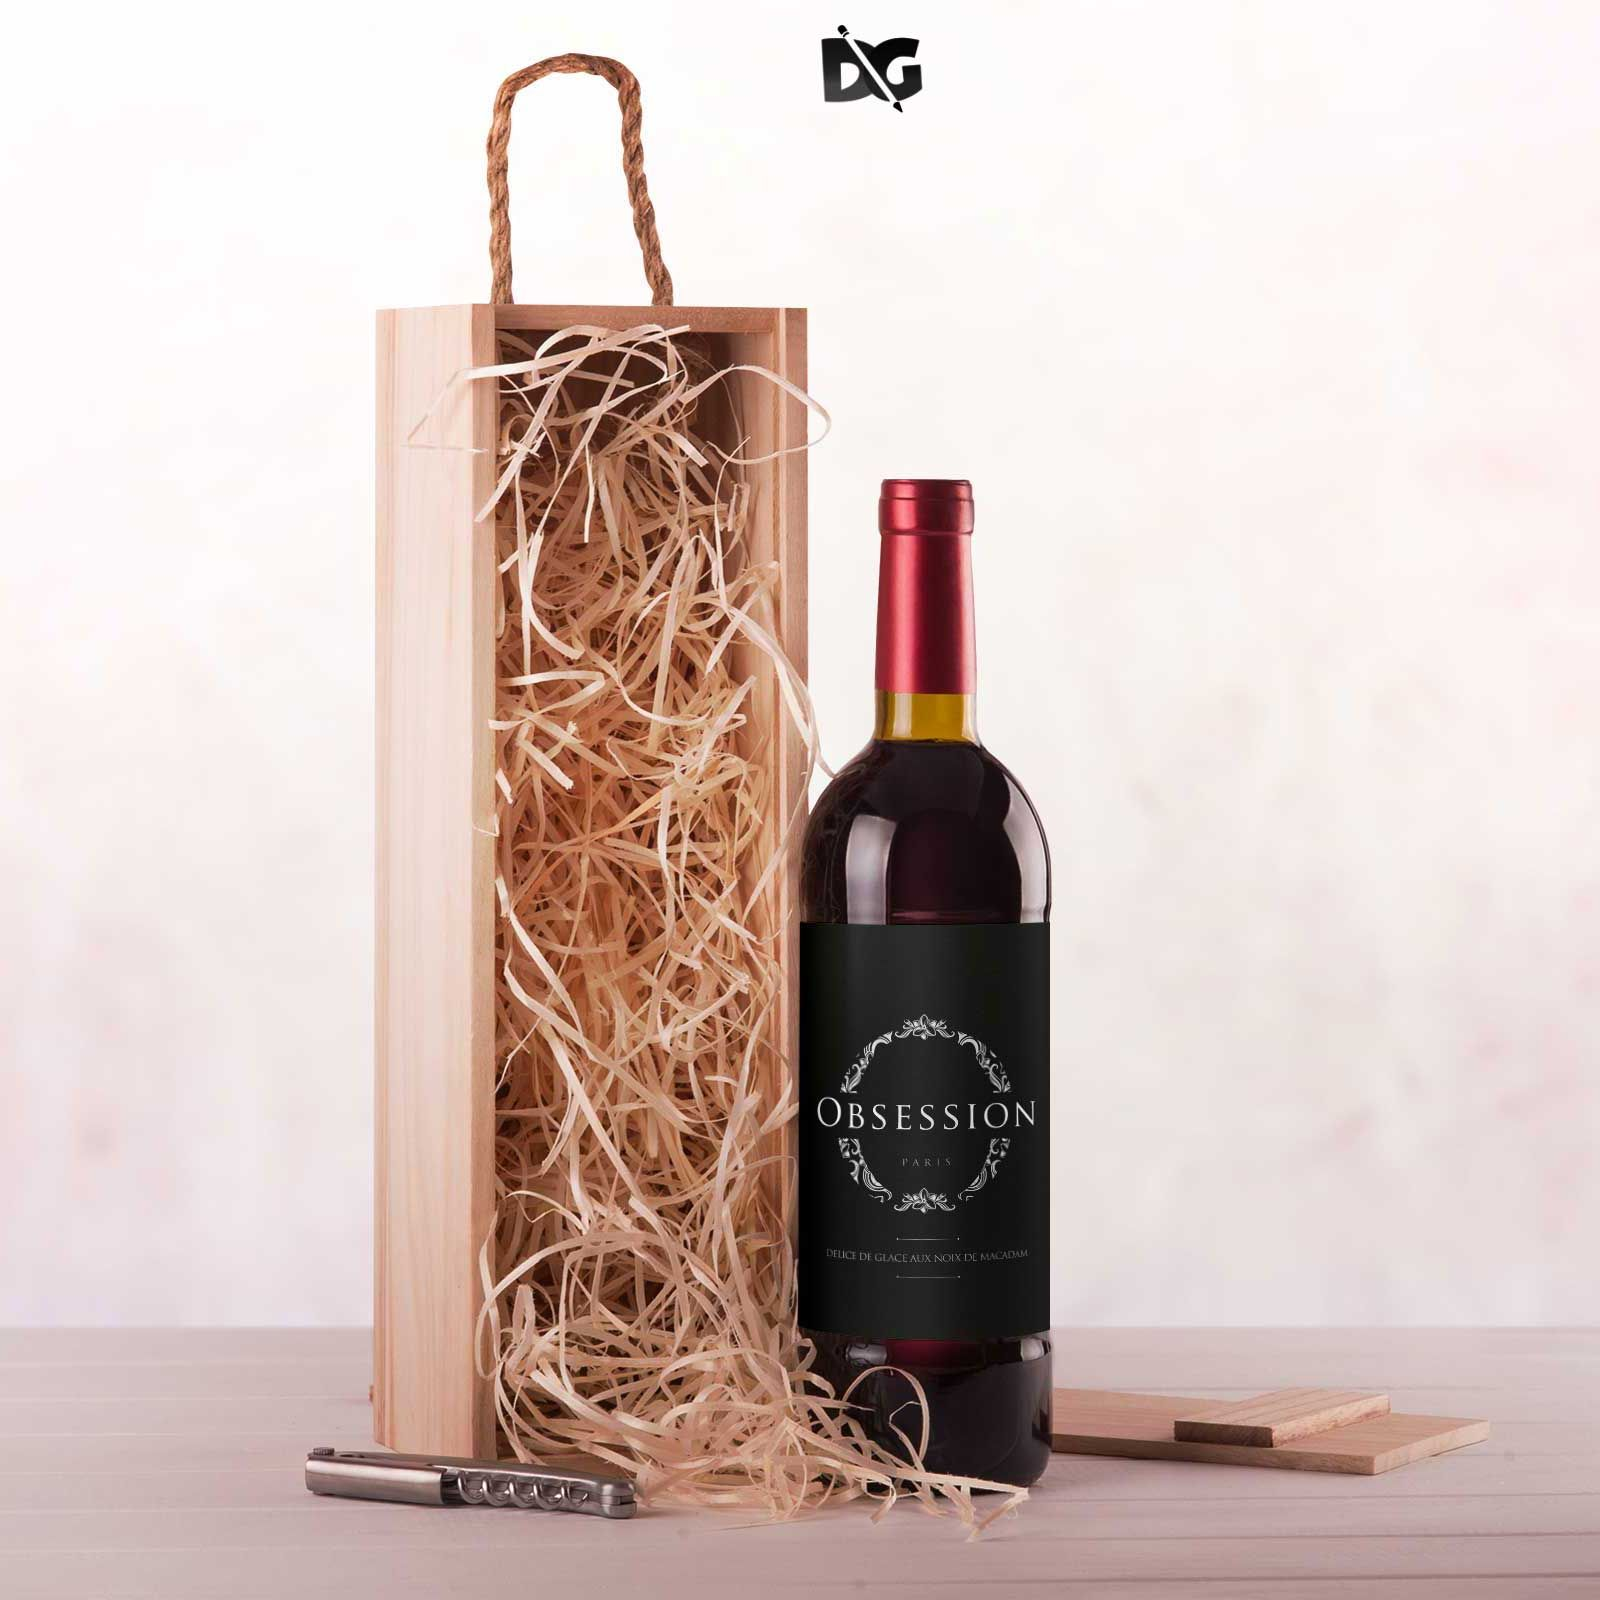 Download In Order To Help You Present A Logo Design Mockup To Your Client In A Super Polished Way We Ve Gathered The Wi Packaging Labels Mockup Free Psd Wine Packaging